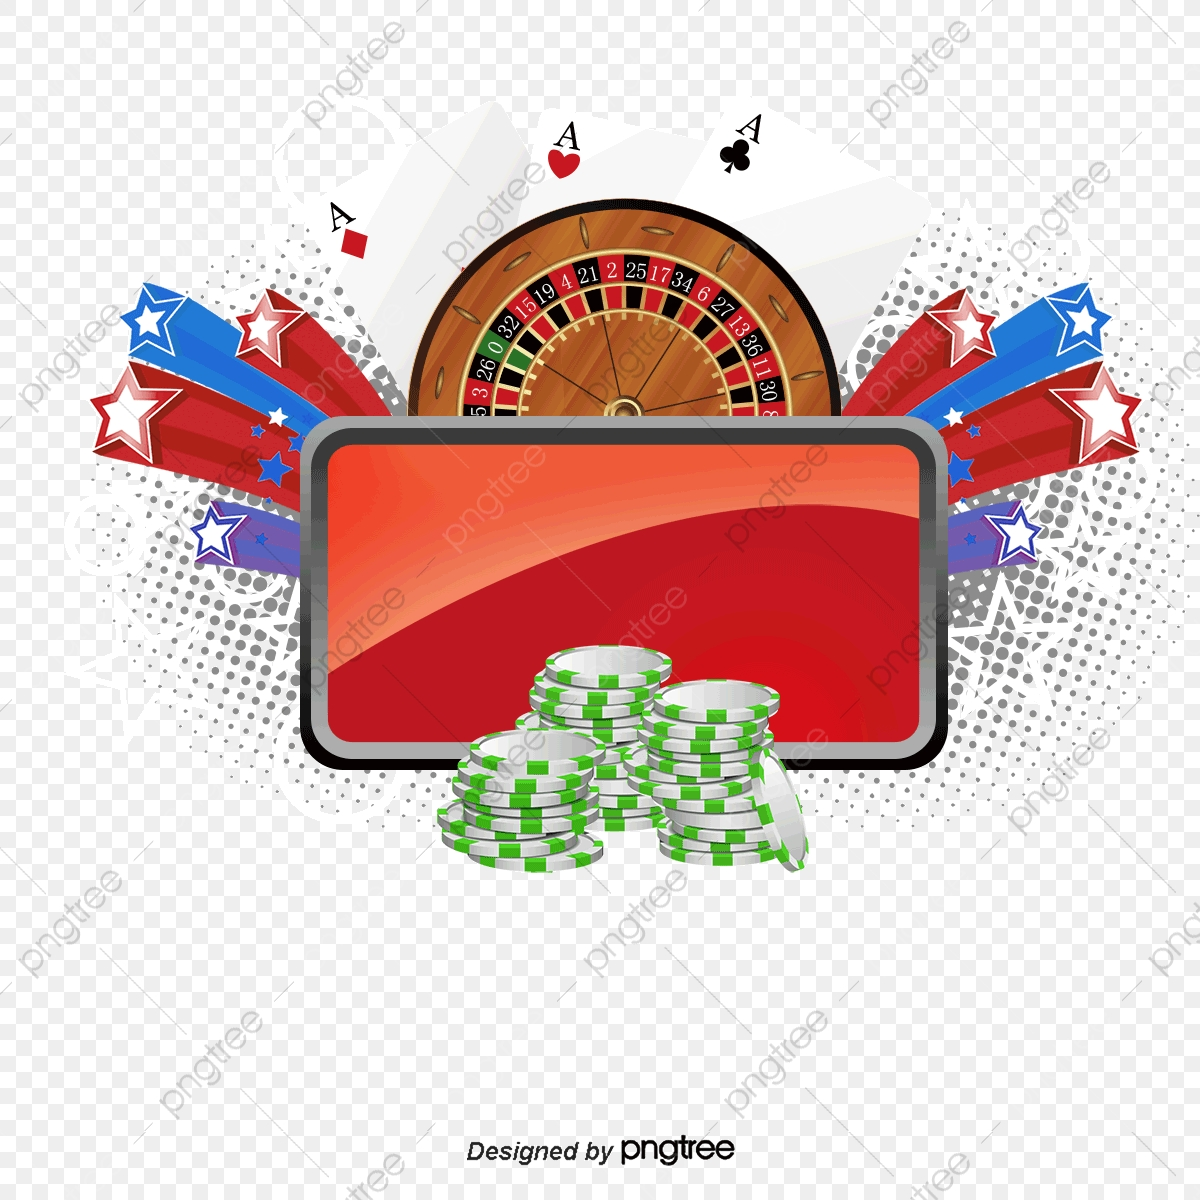 Poker Casino Gambling Turntable Vector, Casino, Gambling, Poker PNG.